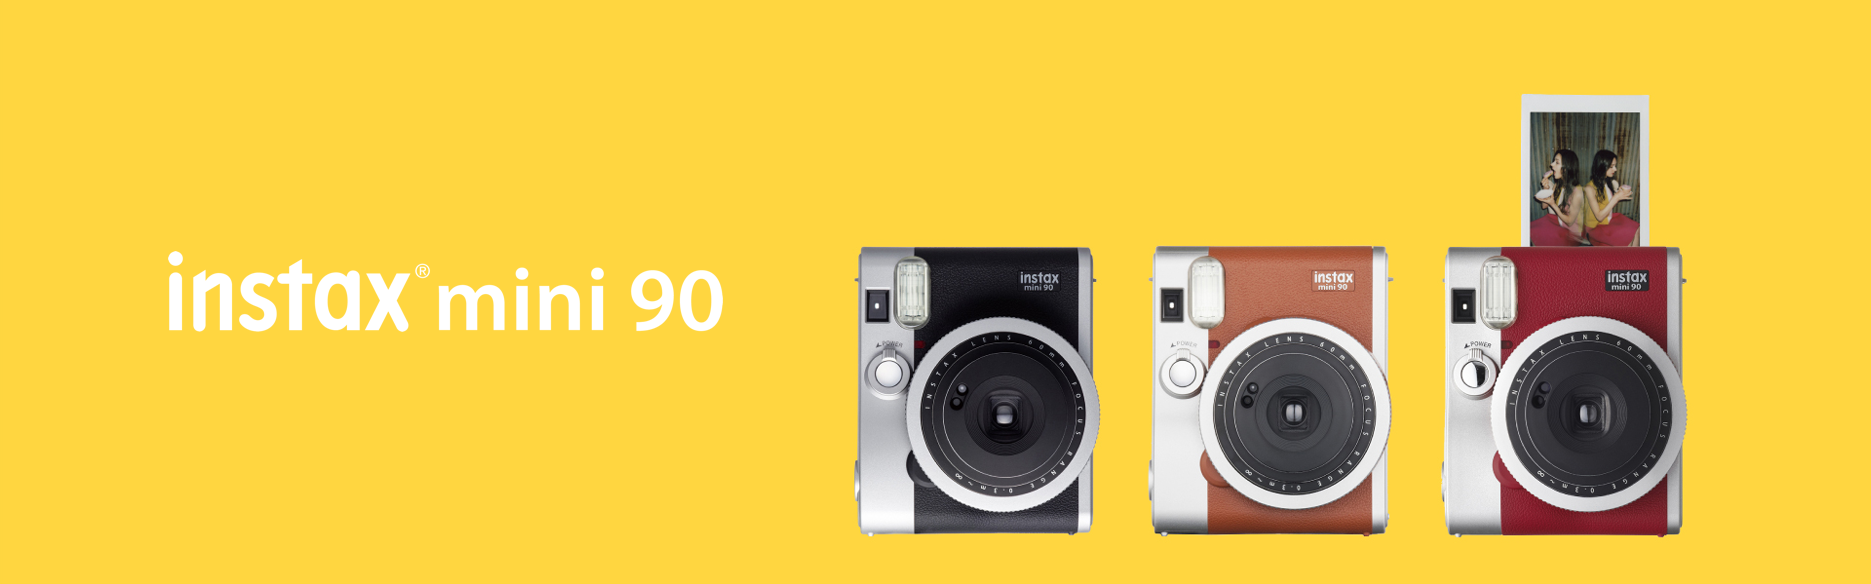 Yellow hero image with mini 90 cameras in different colors